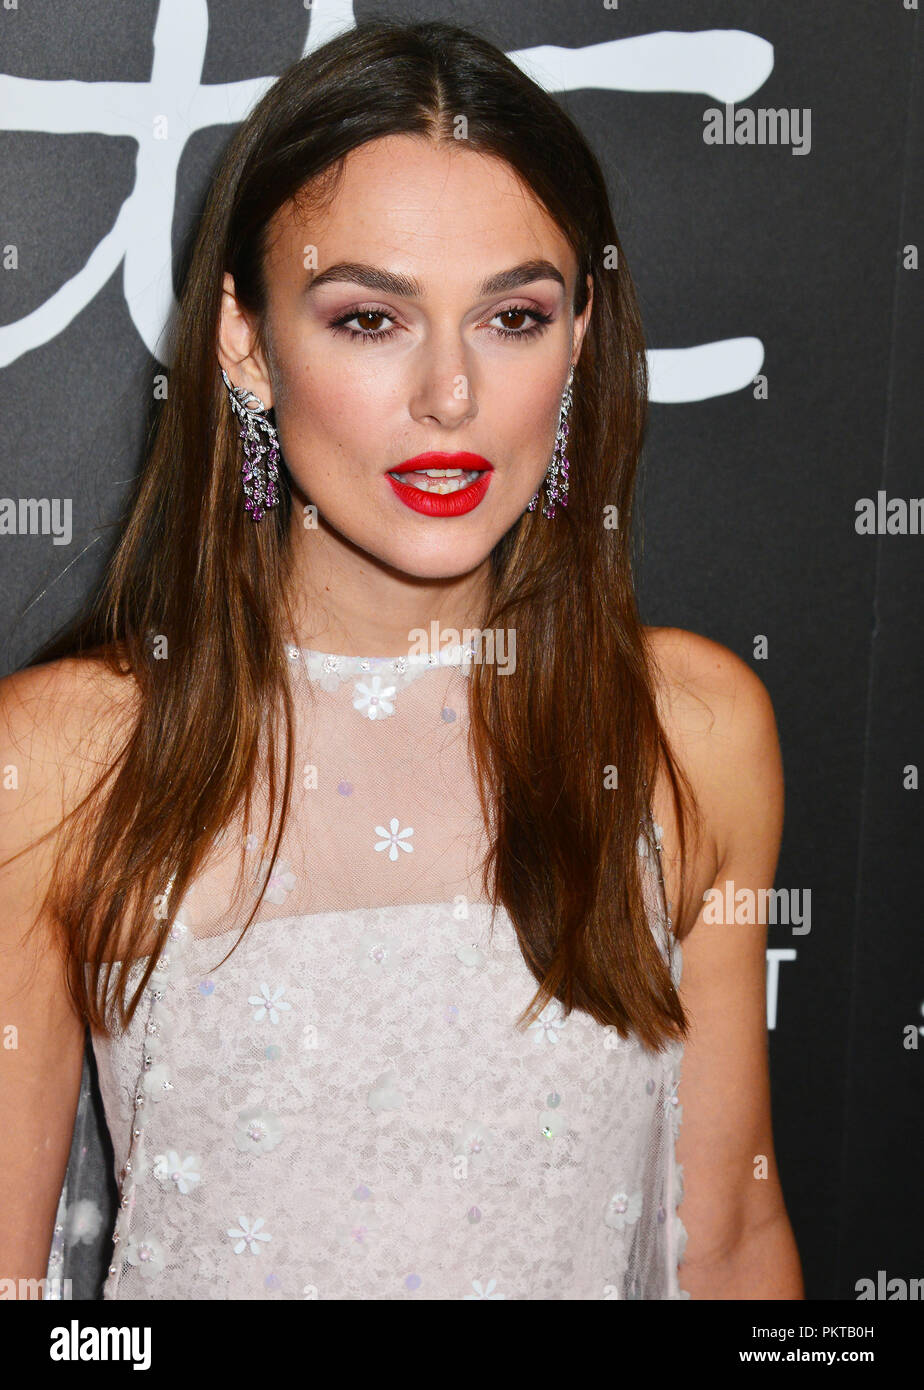 Keira Knightley 016 attends the premiere of Bleecker Street Media's 'Colette' at Samuel Goldwyn Theater on September 14, 2018 in Beverly Hills, California - Stock Image